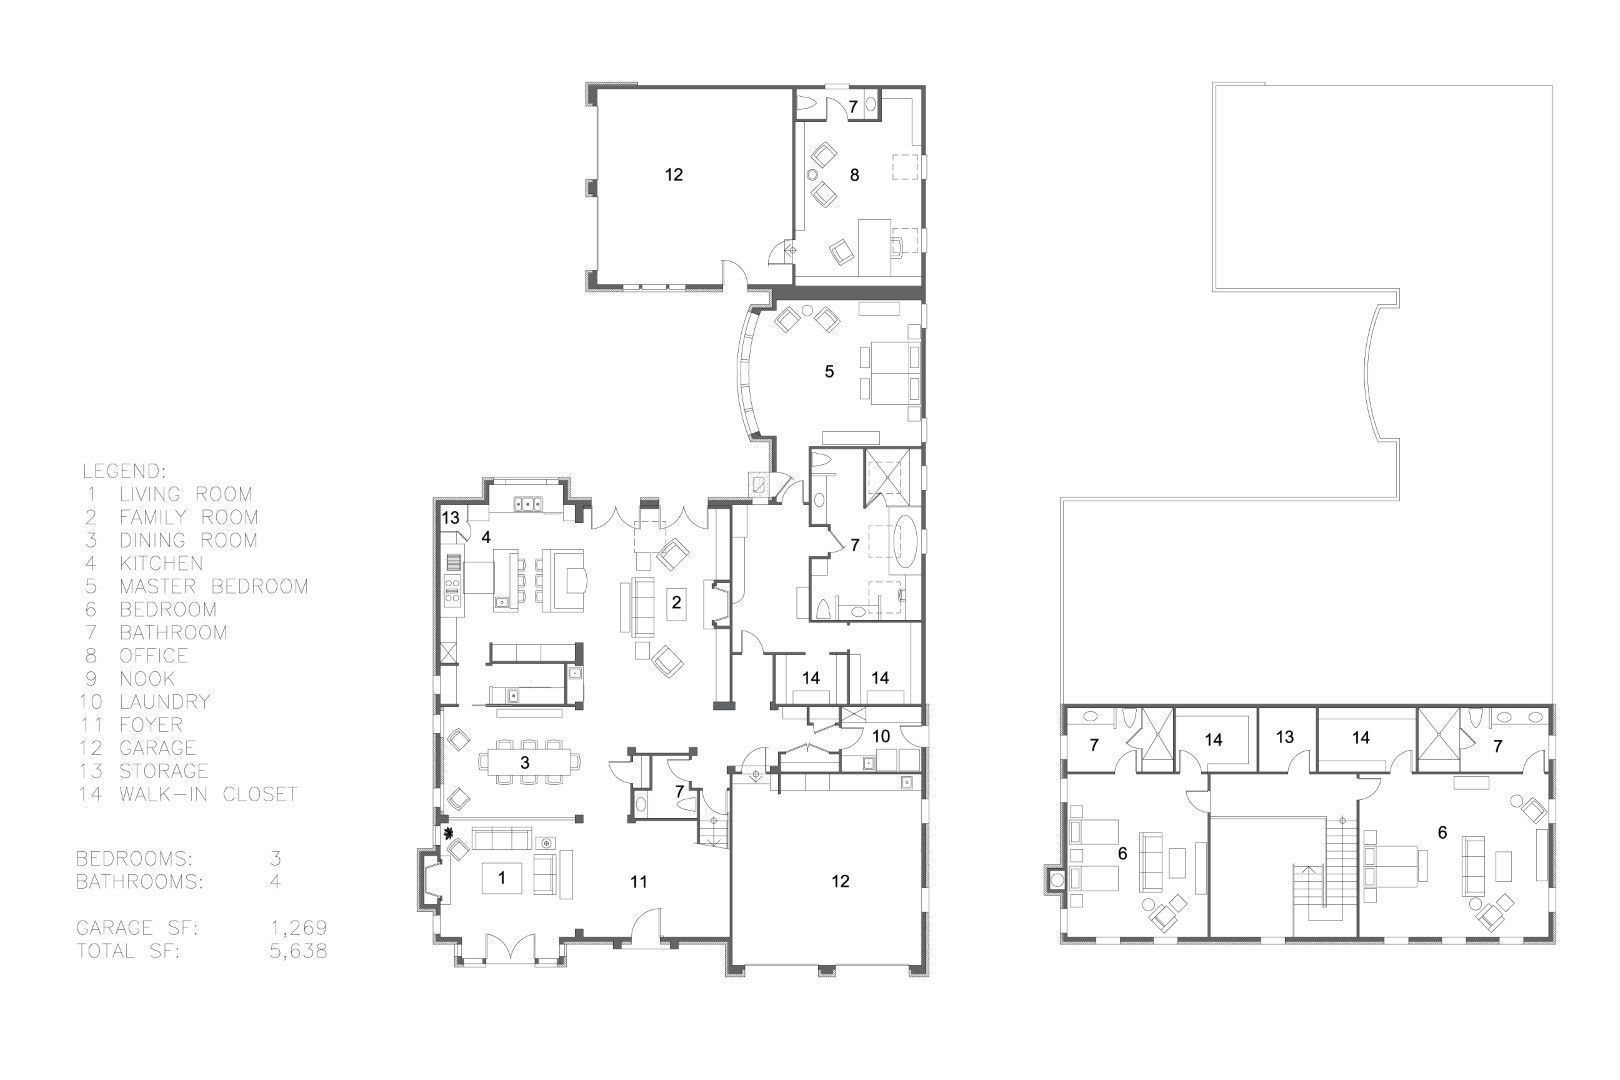 2??cad??? 2 Story Large Modern House With Cad Floor Plan 3d Model